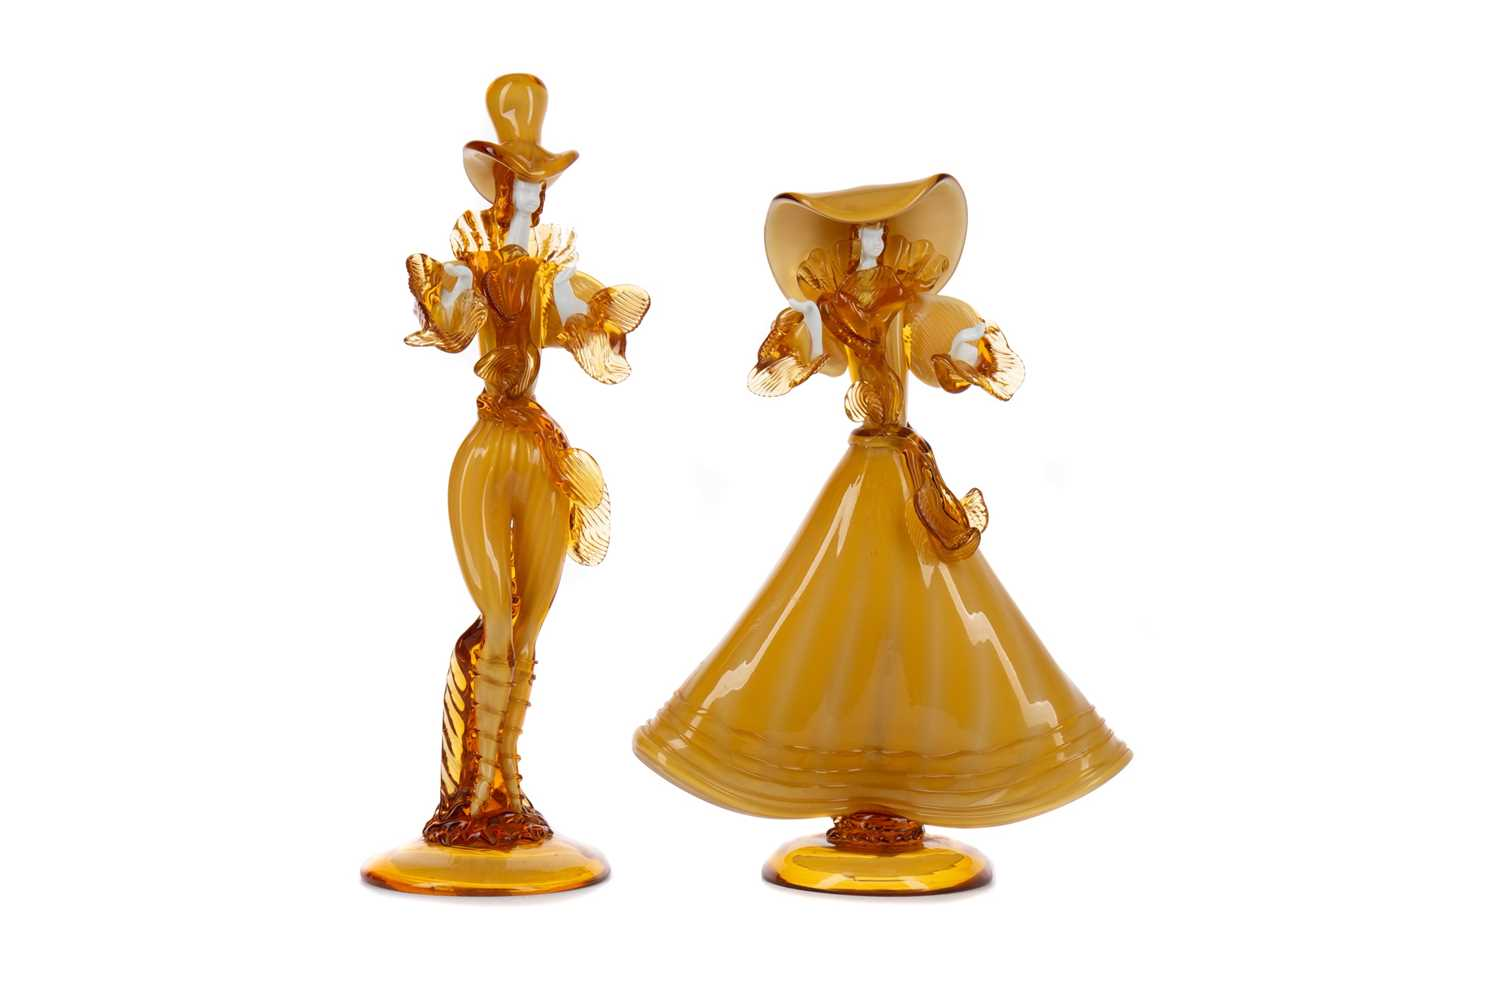 Lot 1012 - A PAIR OF MURANO GLASS FIGURES